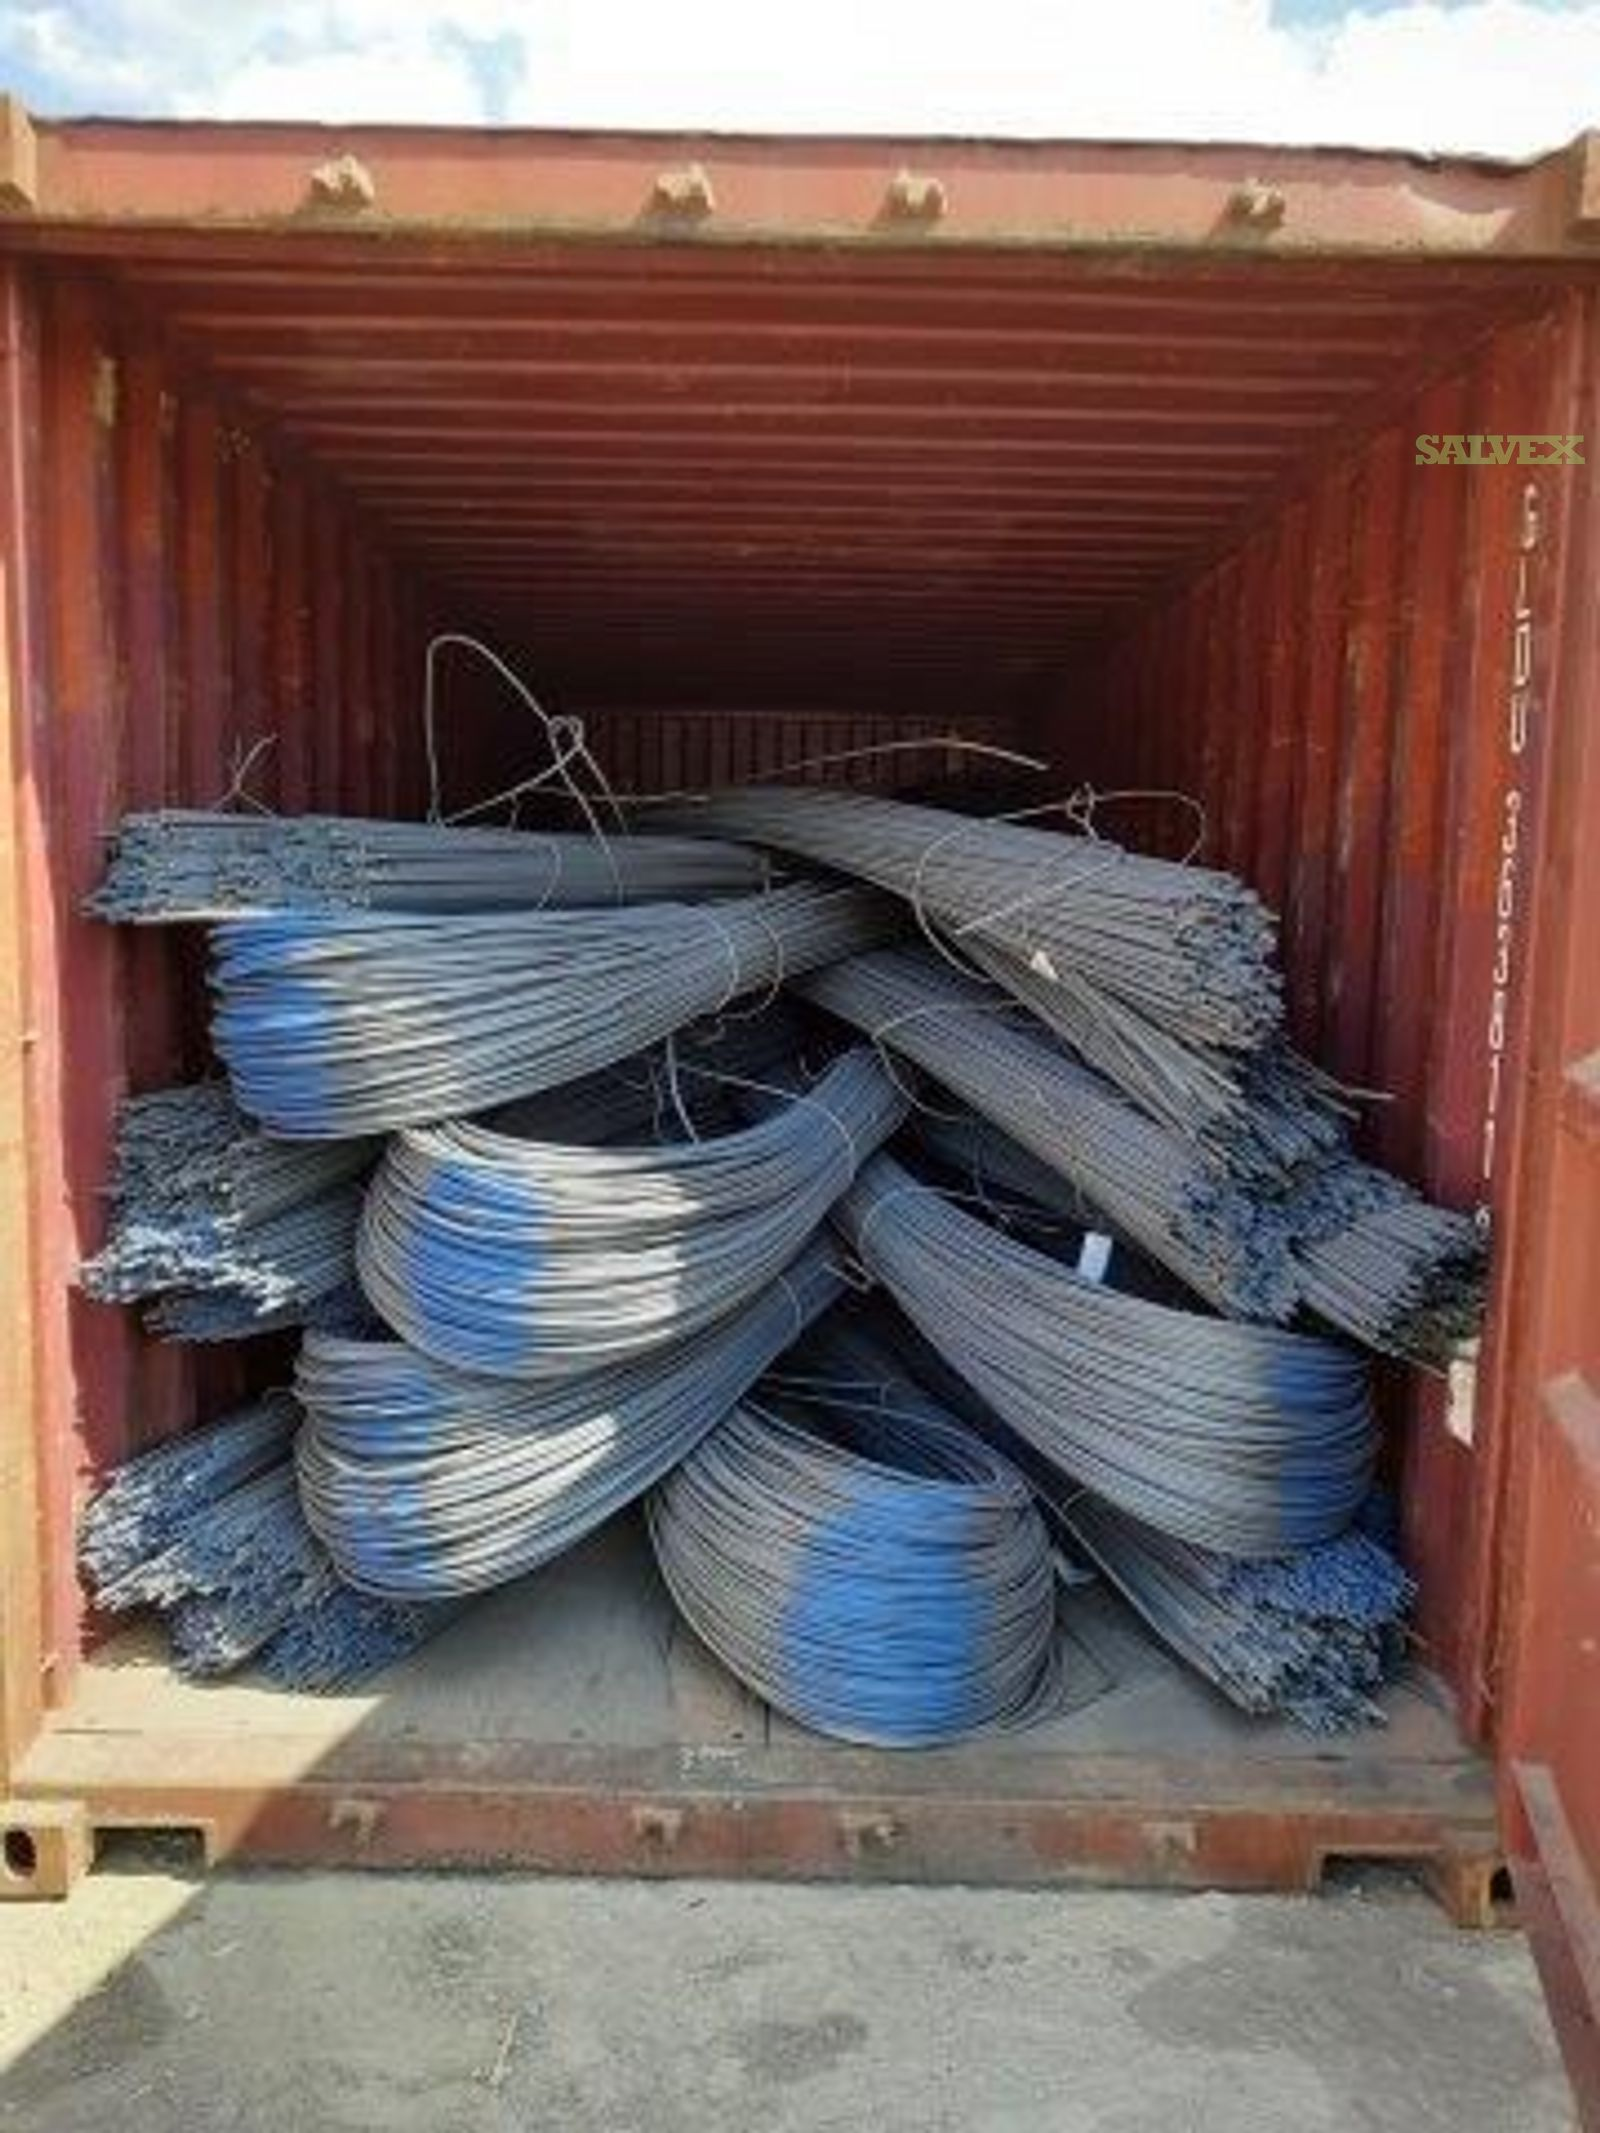 Rebar / Reinforcing Deformed Steel Bars (23 x 40' Containers / 644 Tons)